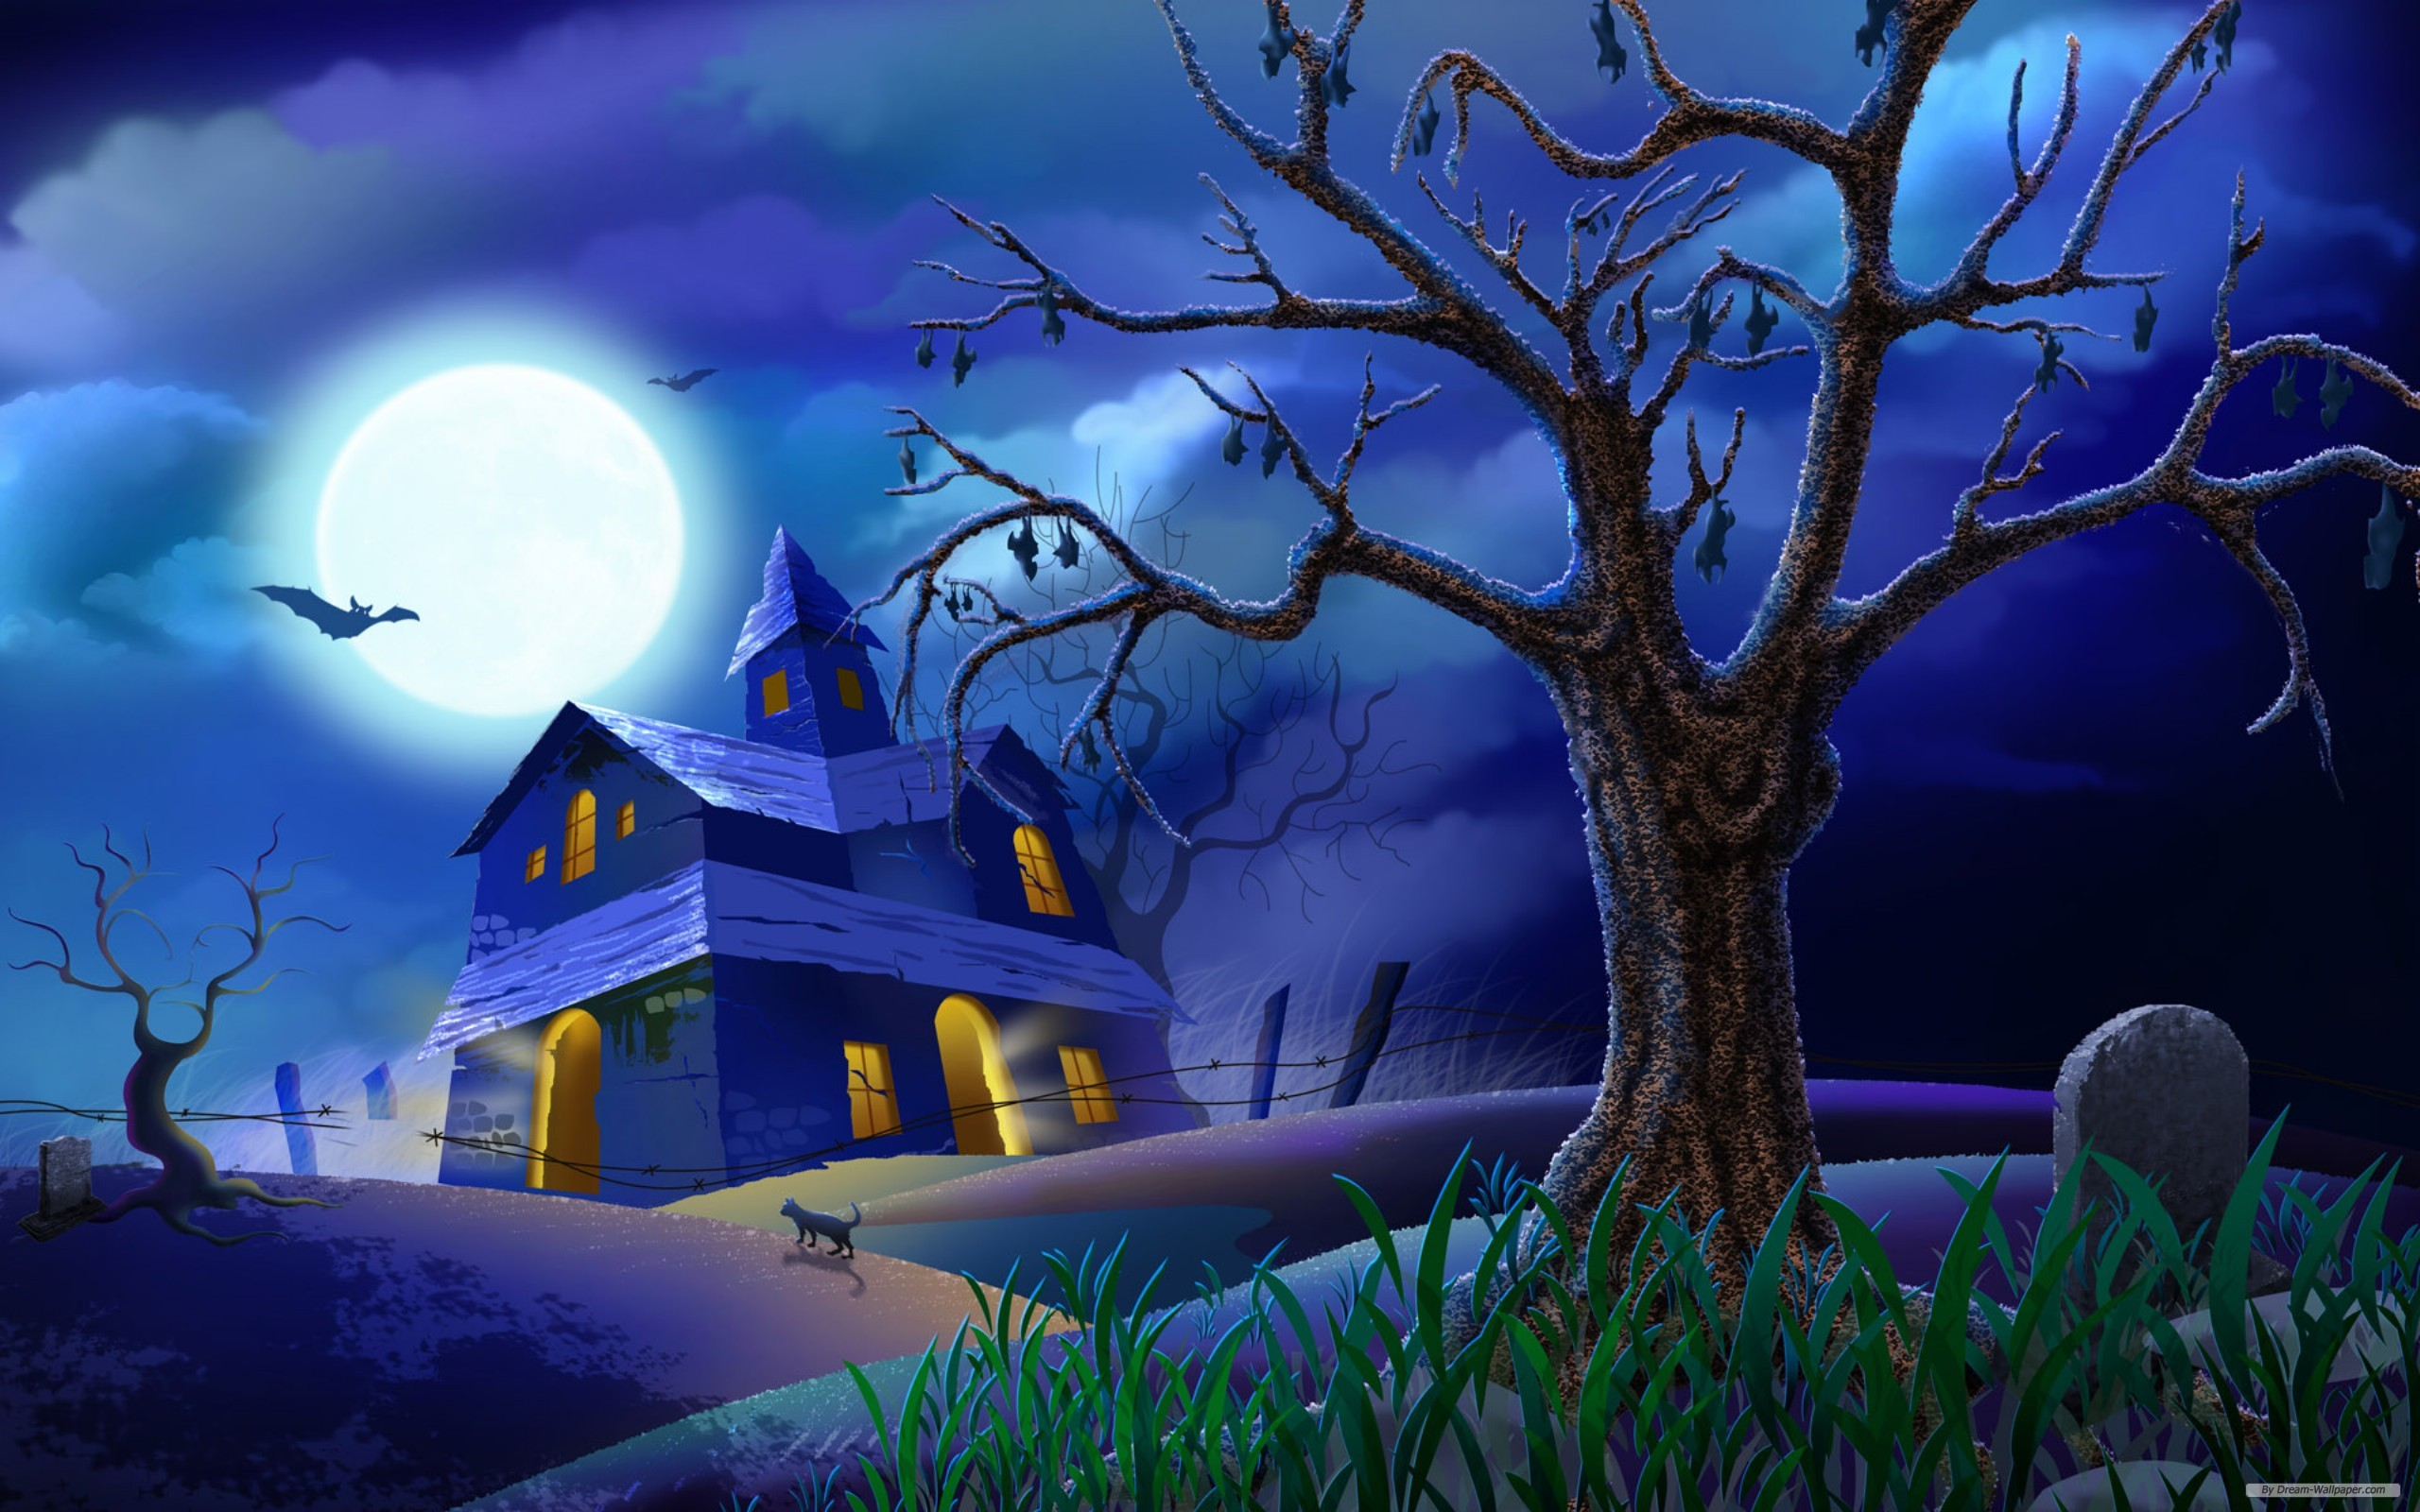 Wallpaper   Holiday wallpaper   Halloween Episode 6 2560x1600